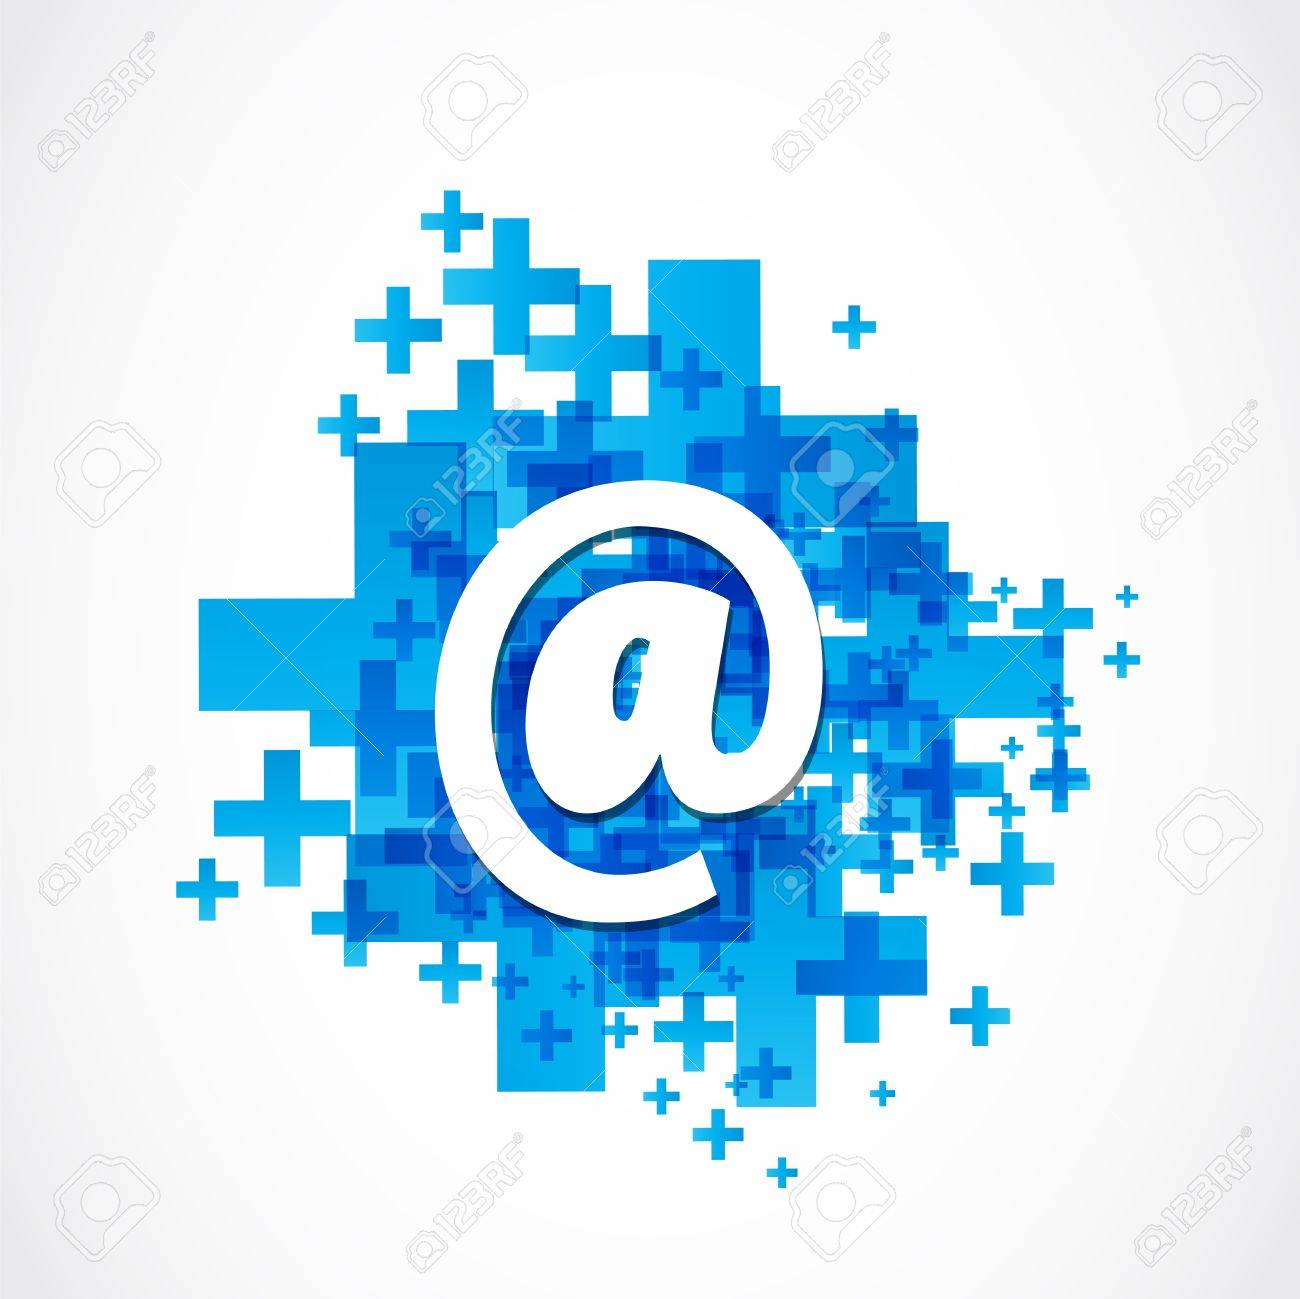 Positive Business Email Stock Vector - 19369935